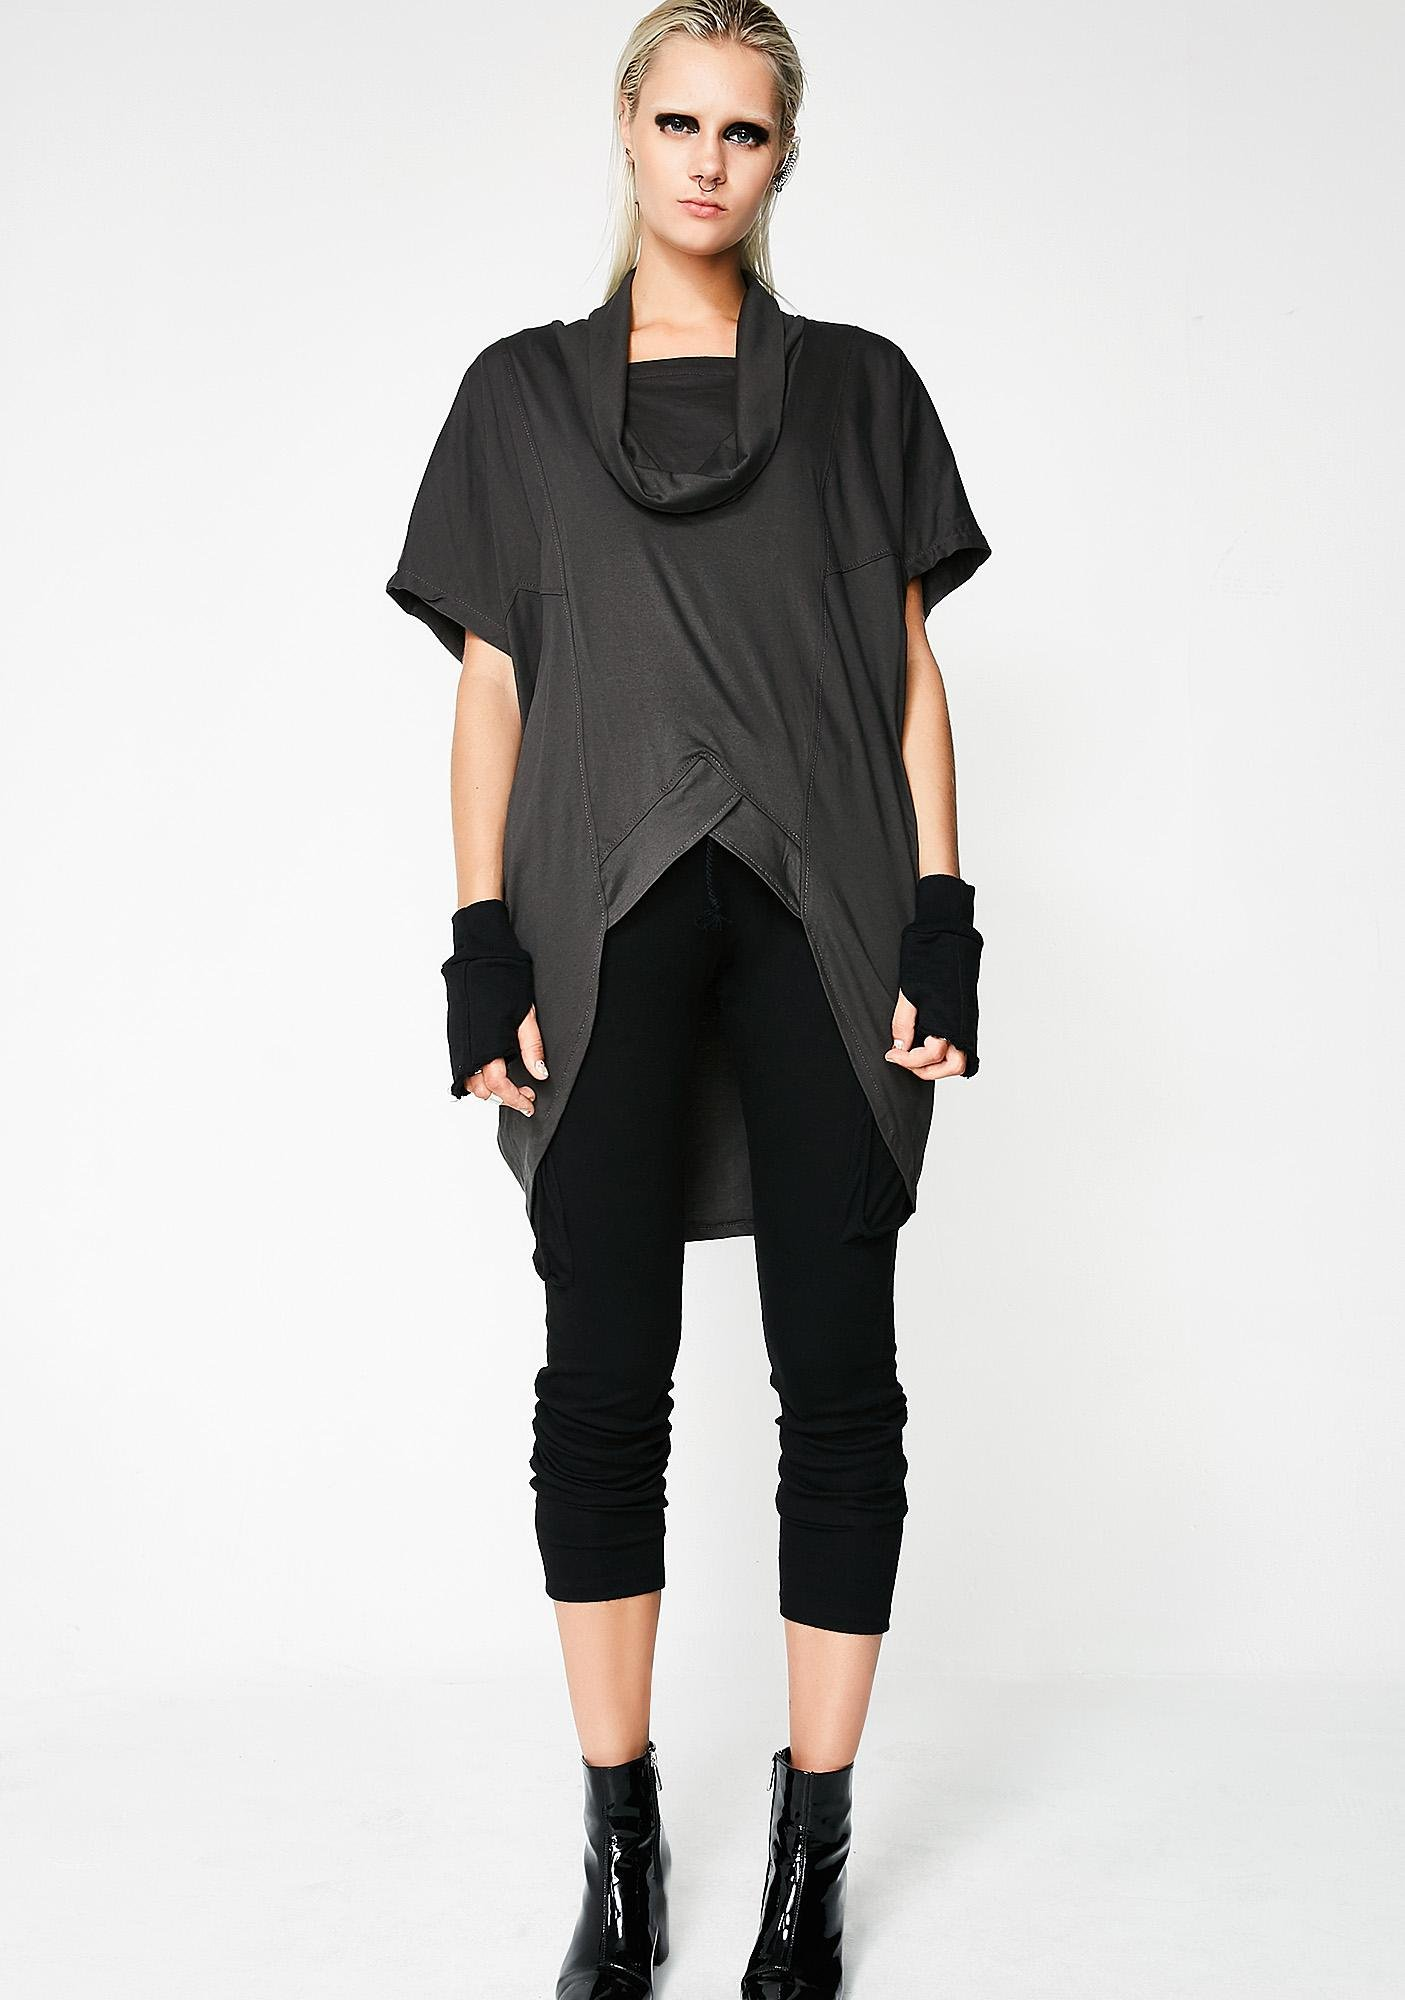 MNML Invictus Cowl Neck Top